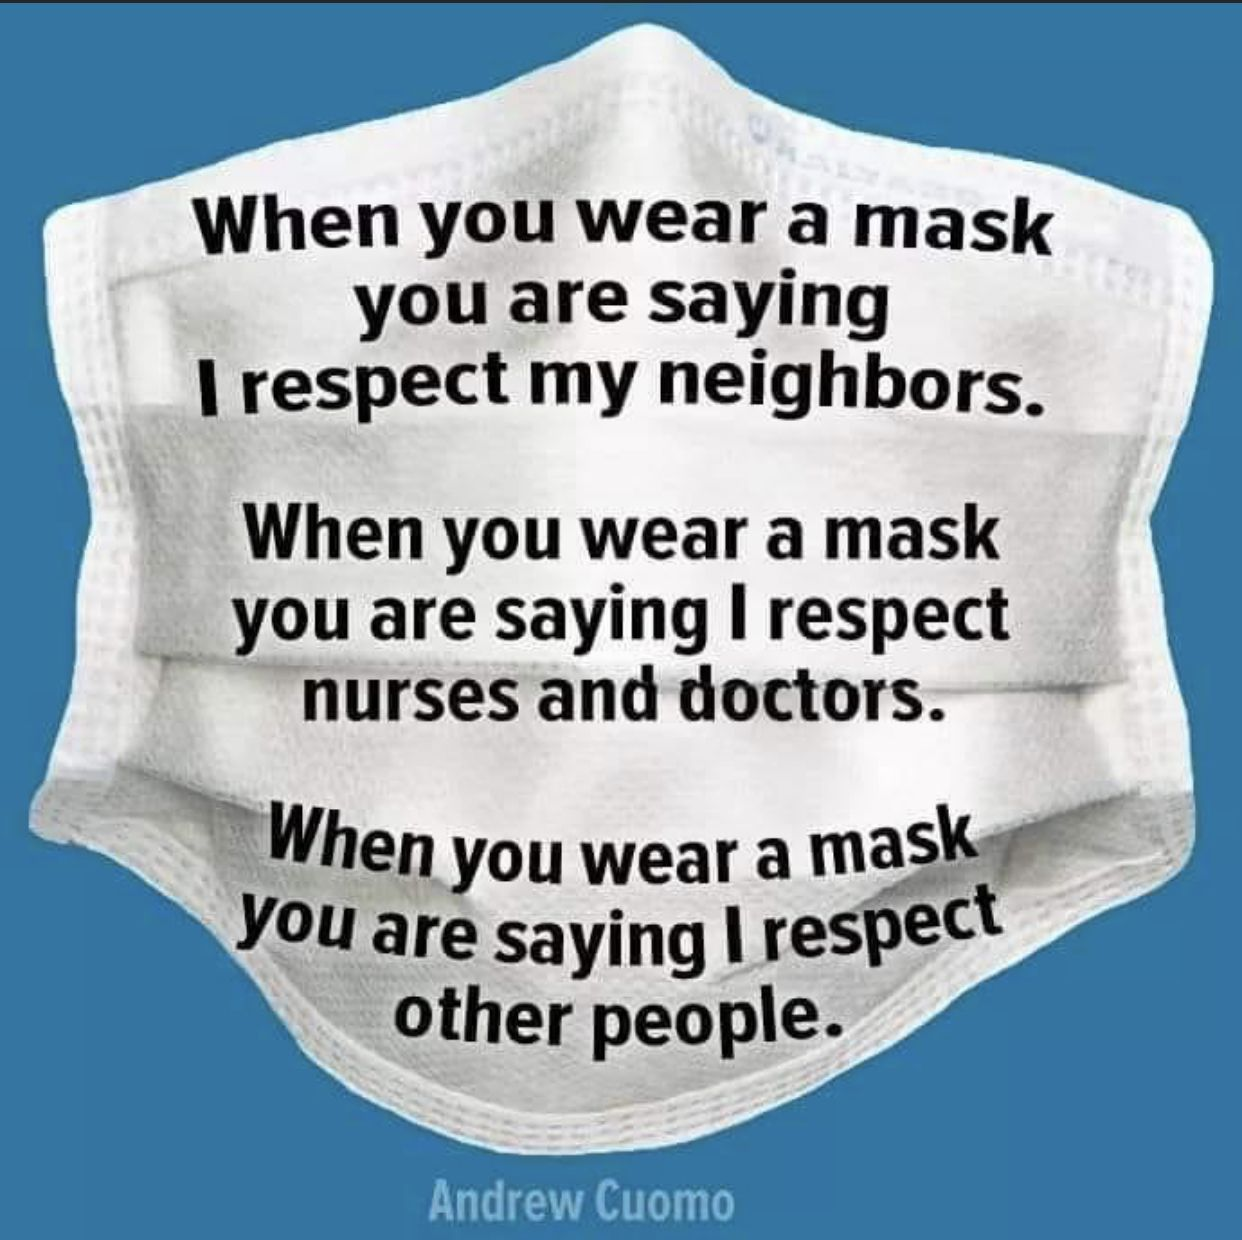 100 Cotton Reusable Double Layer With Elastic Ear Loops And Washable Face Cover In 2020 Mask Quotes Sayings Mask